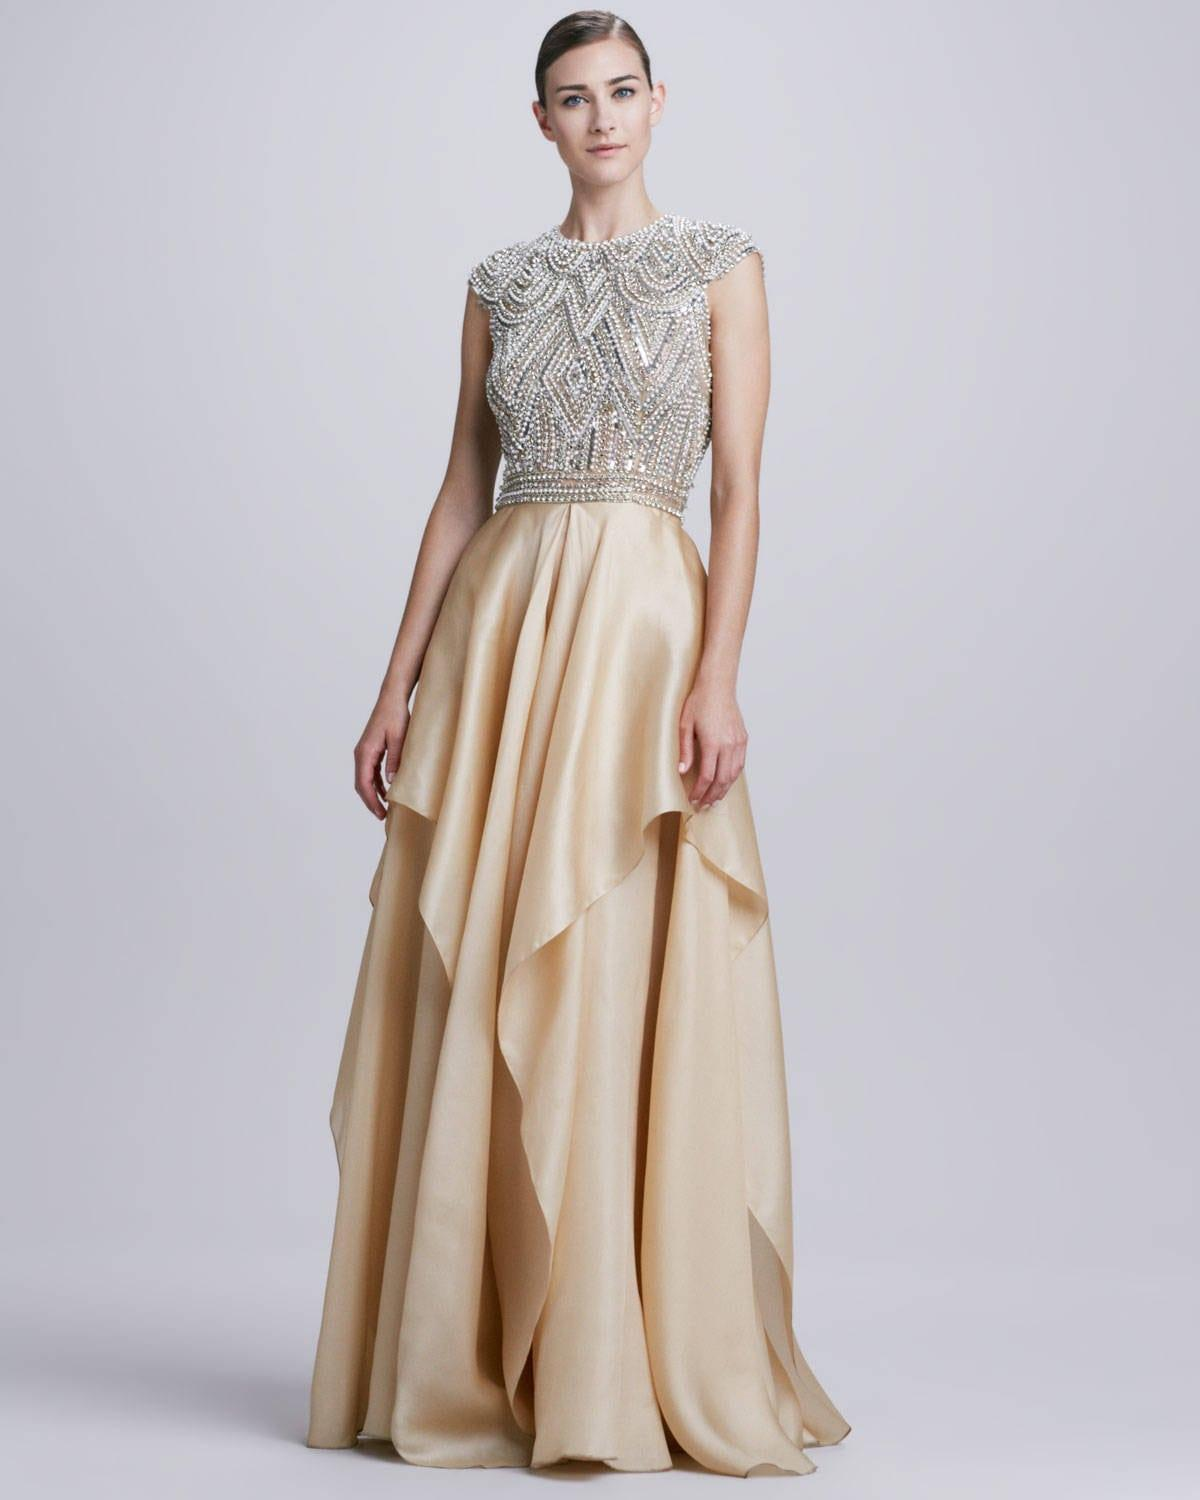 Naeem khan evening gown Replica designer clothes uk